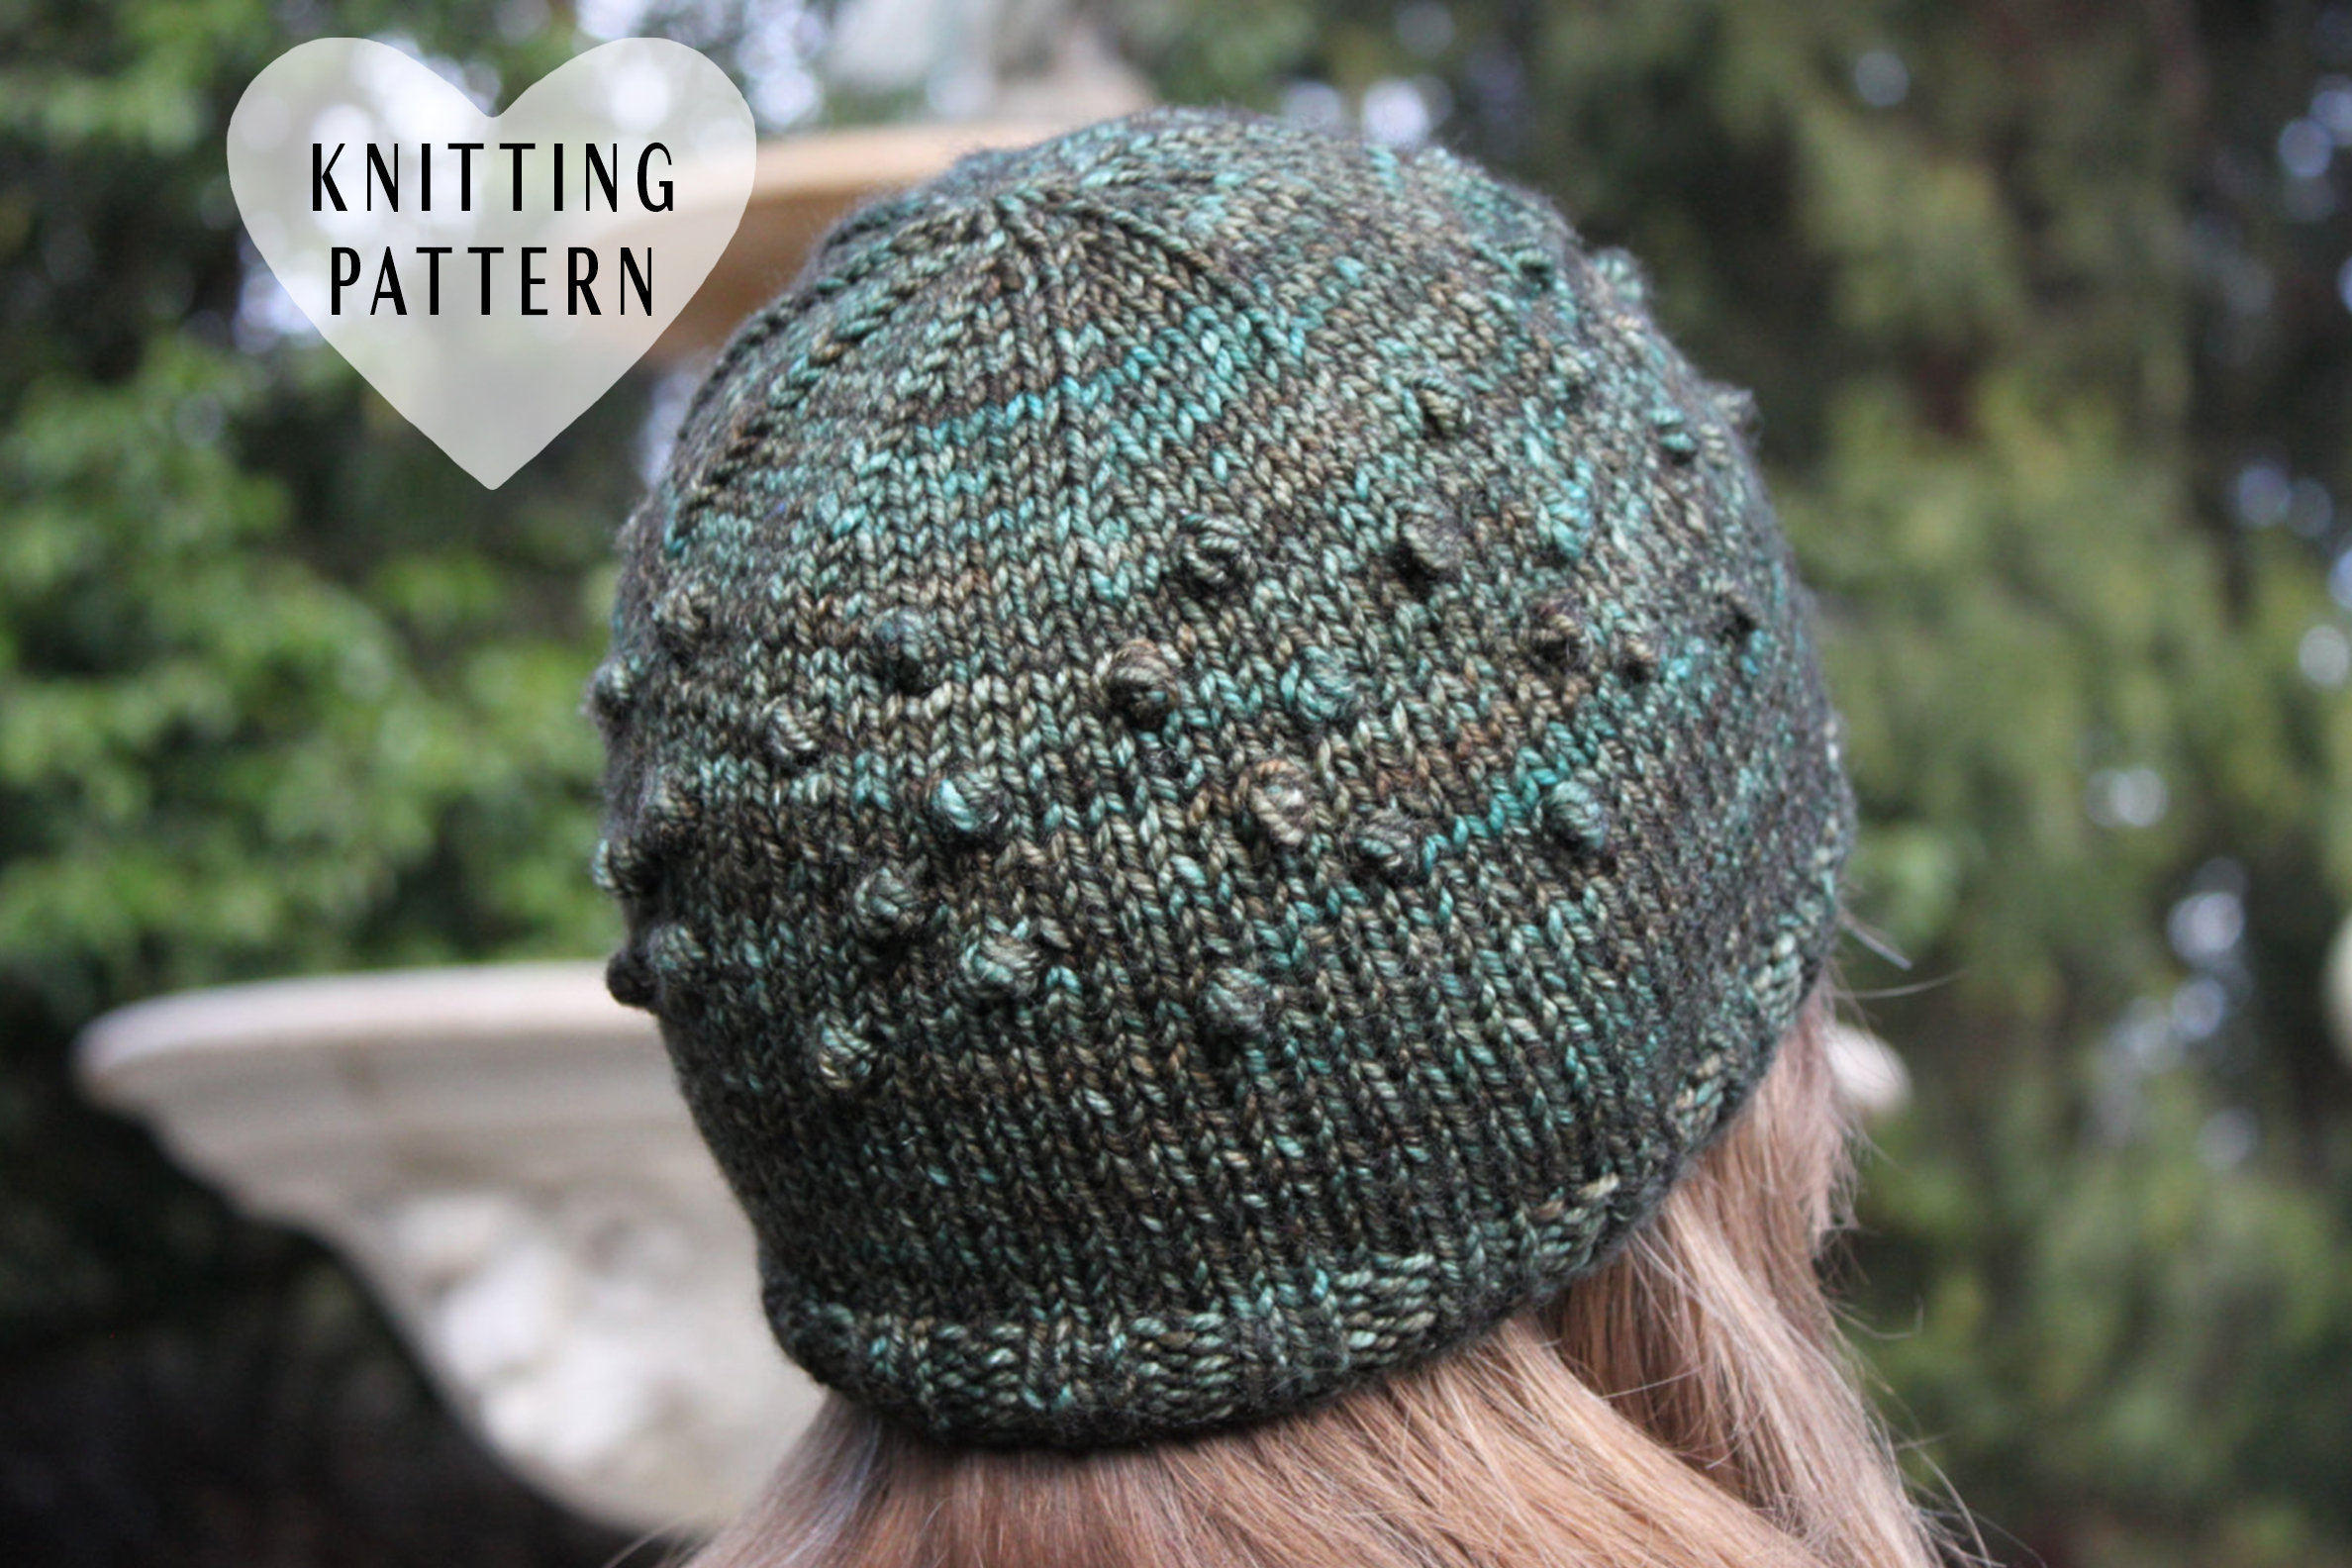 Bobble Hat Knitting Pattern Knitting Pattern Bobble Hat Knit Knitted Adult Size Green Hat Beanie Fleece Lined Madelinetosh